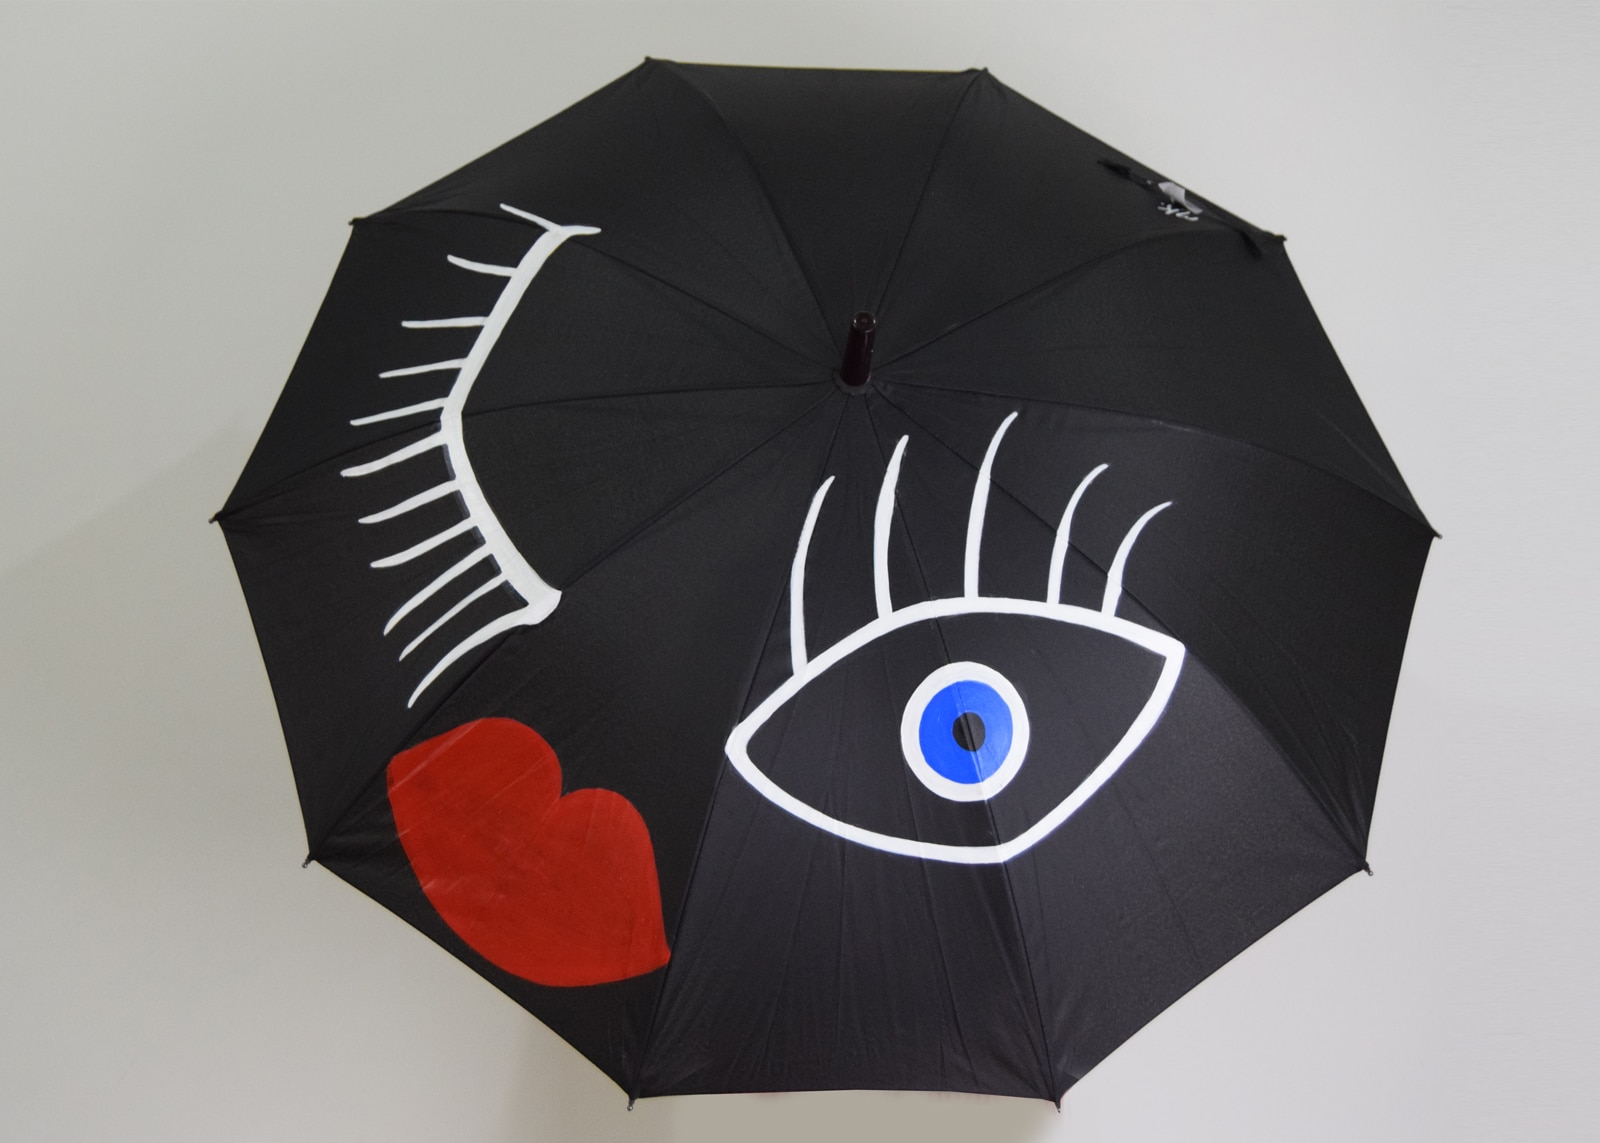 Wink Umbrella